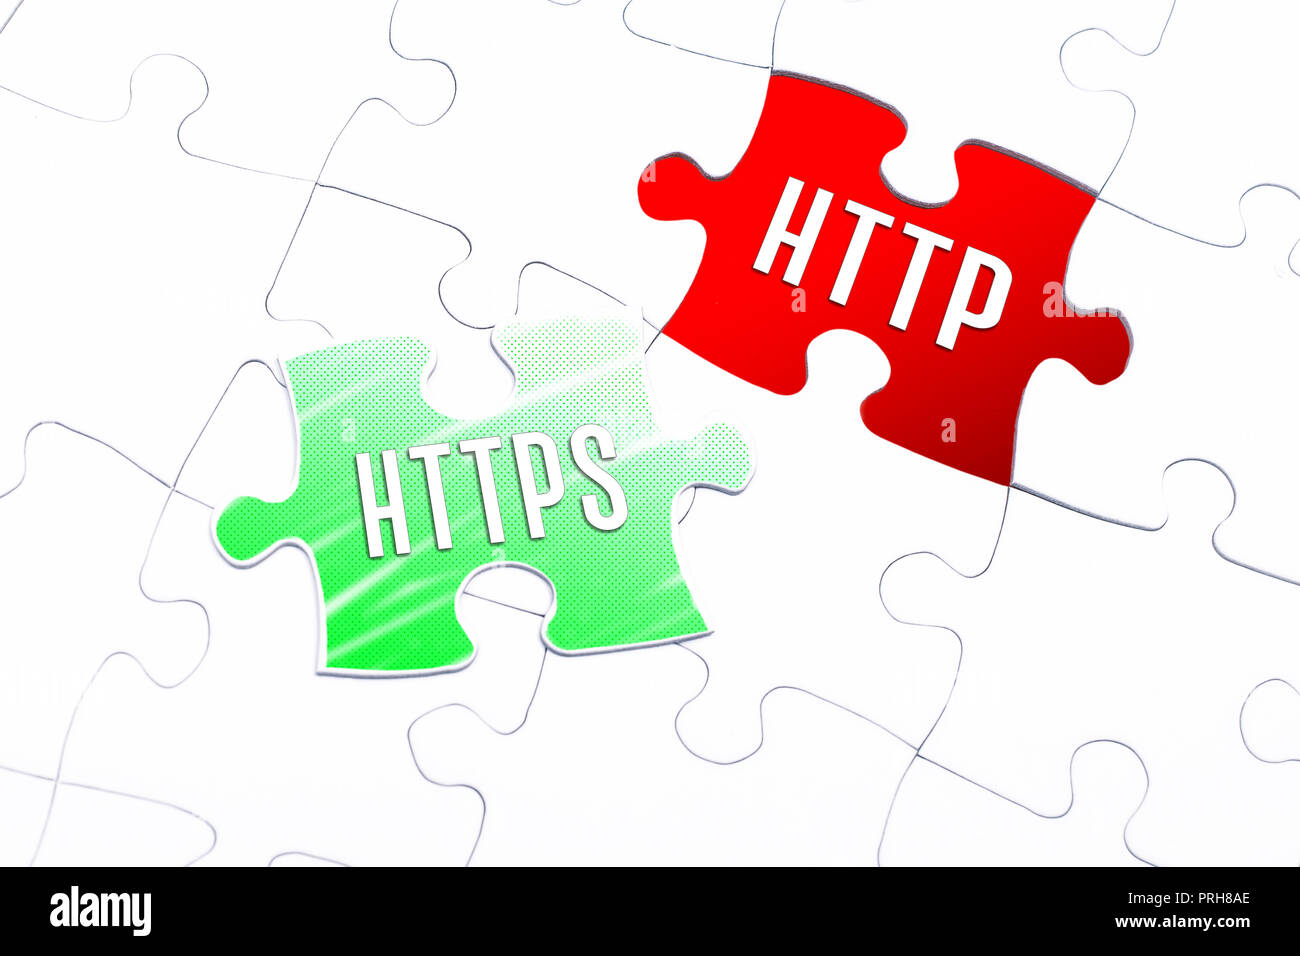 The Words HTTPS And HTTP In A Missing Piece Jigsaw Puzzle - Stock Image